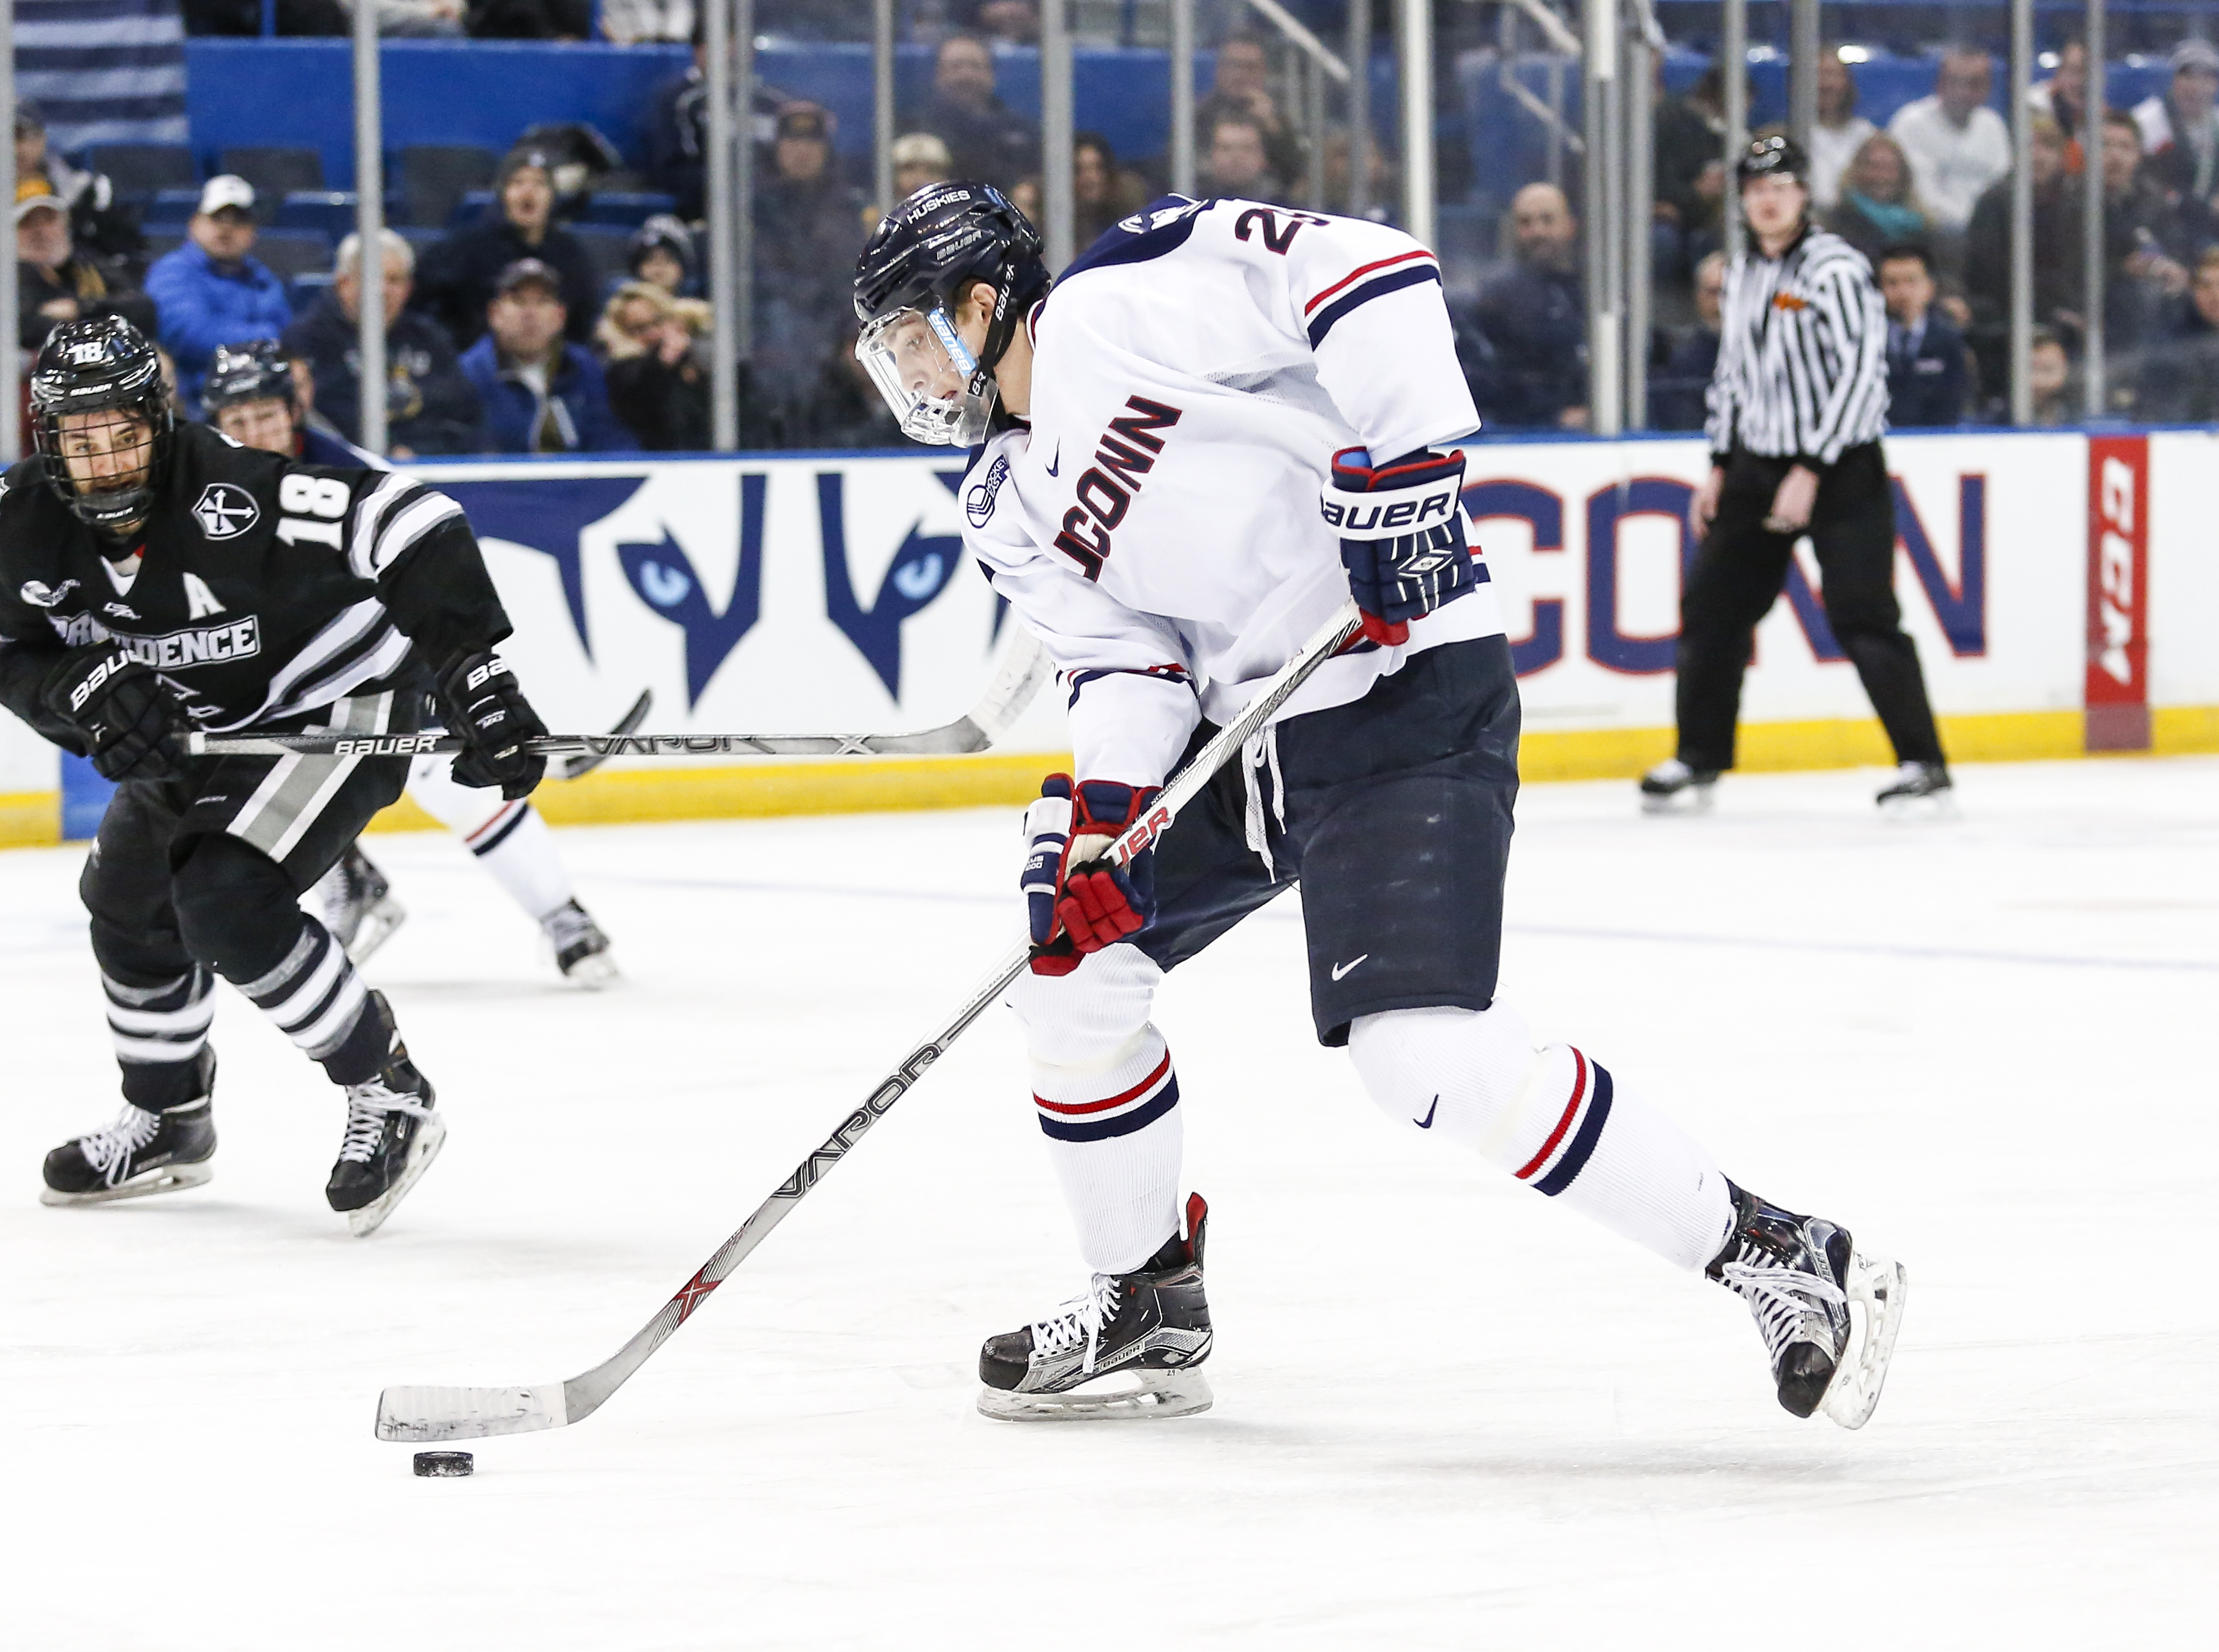 U18 WORLDS: World U18s - US Blows Out Canada For Bronze